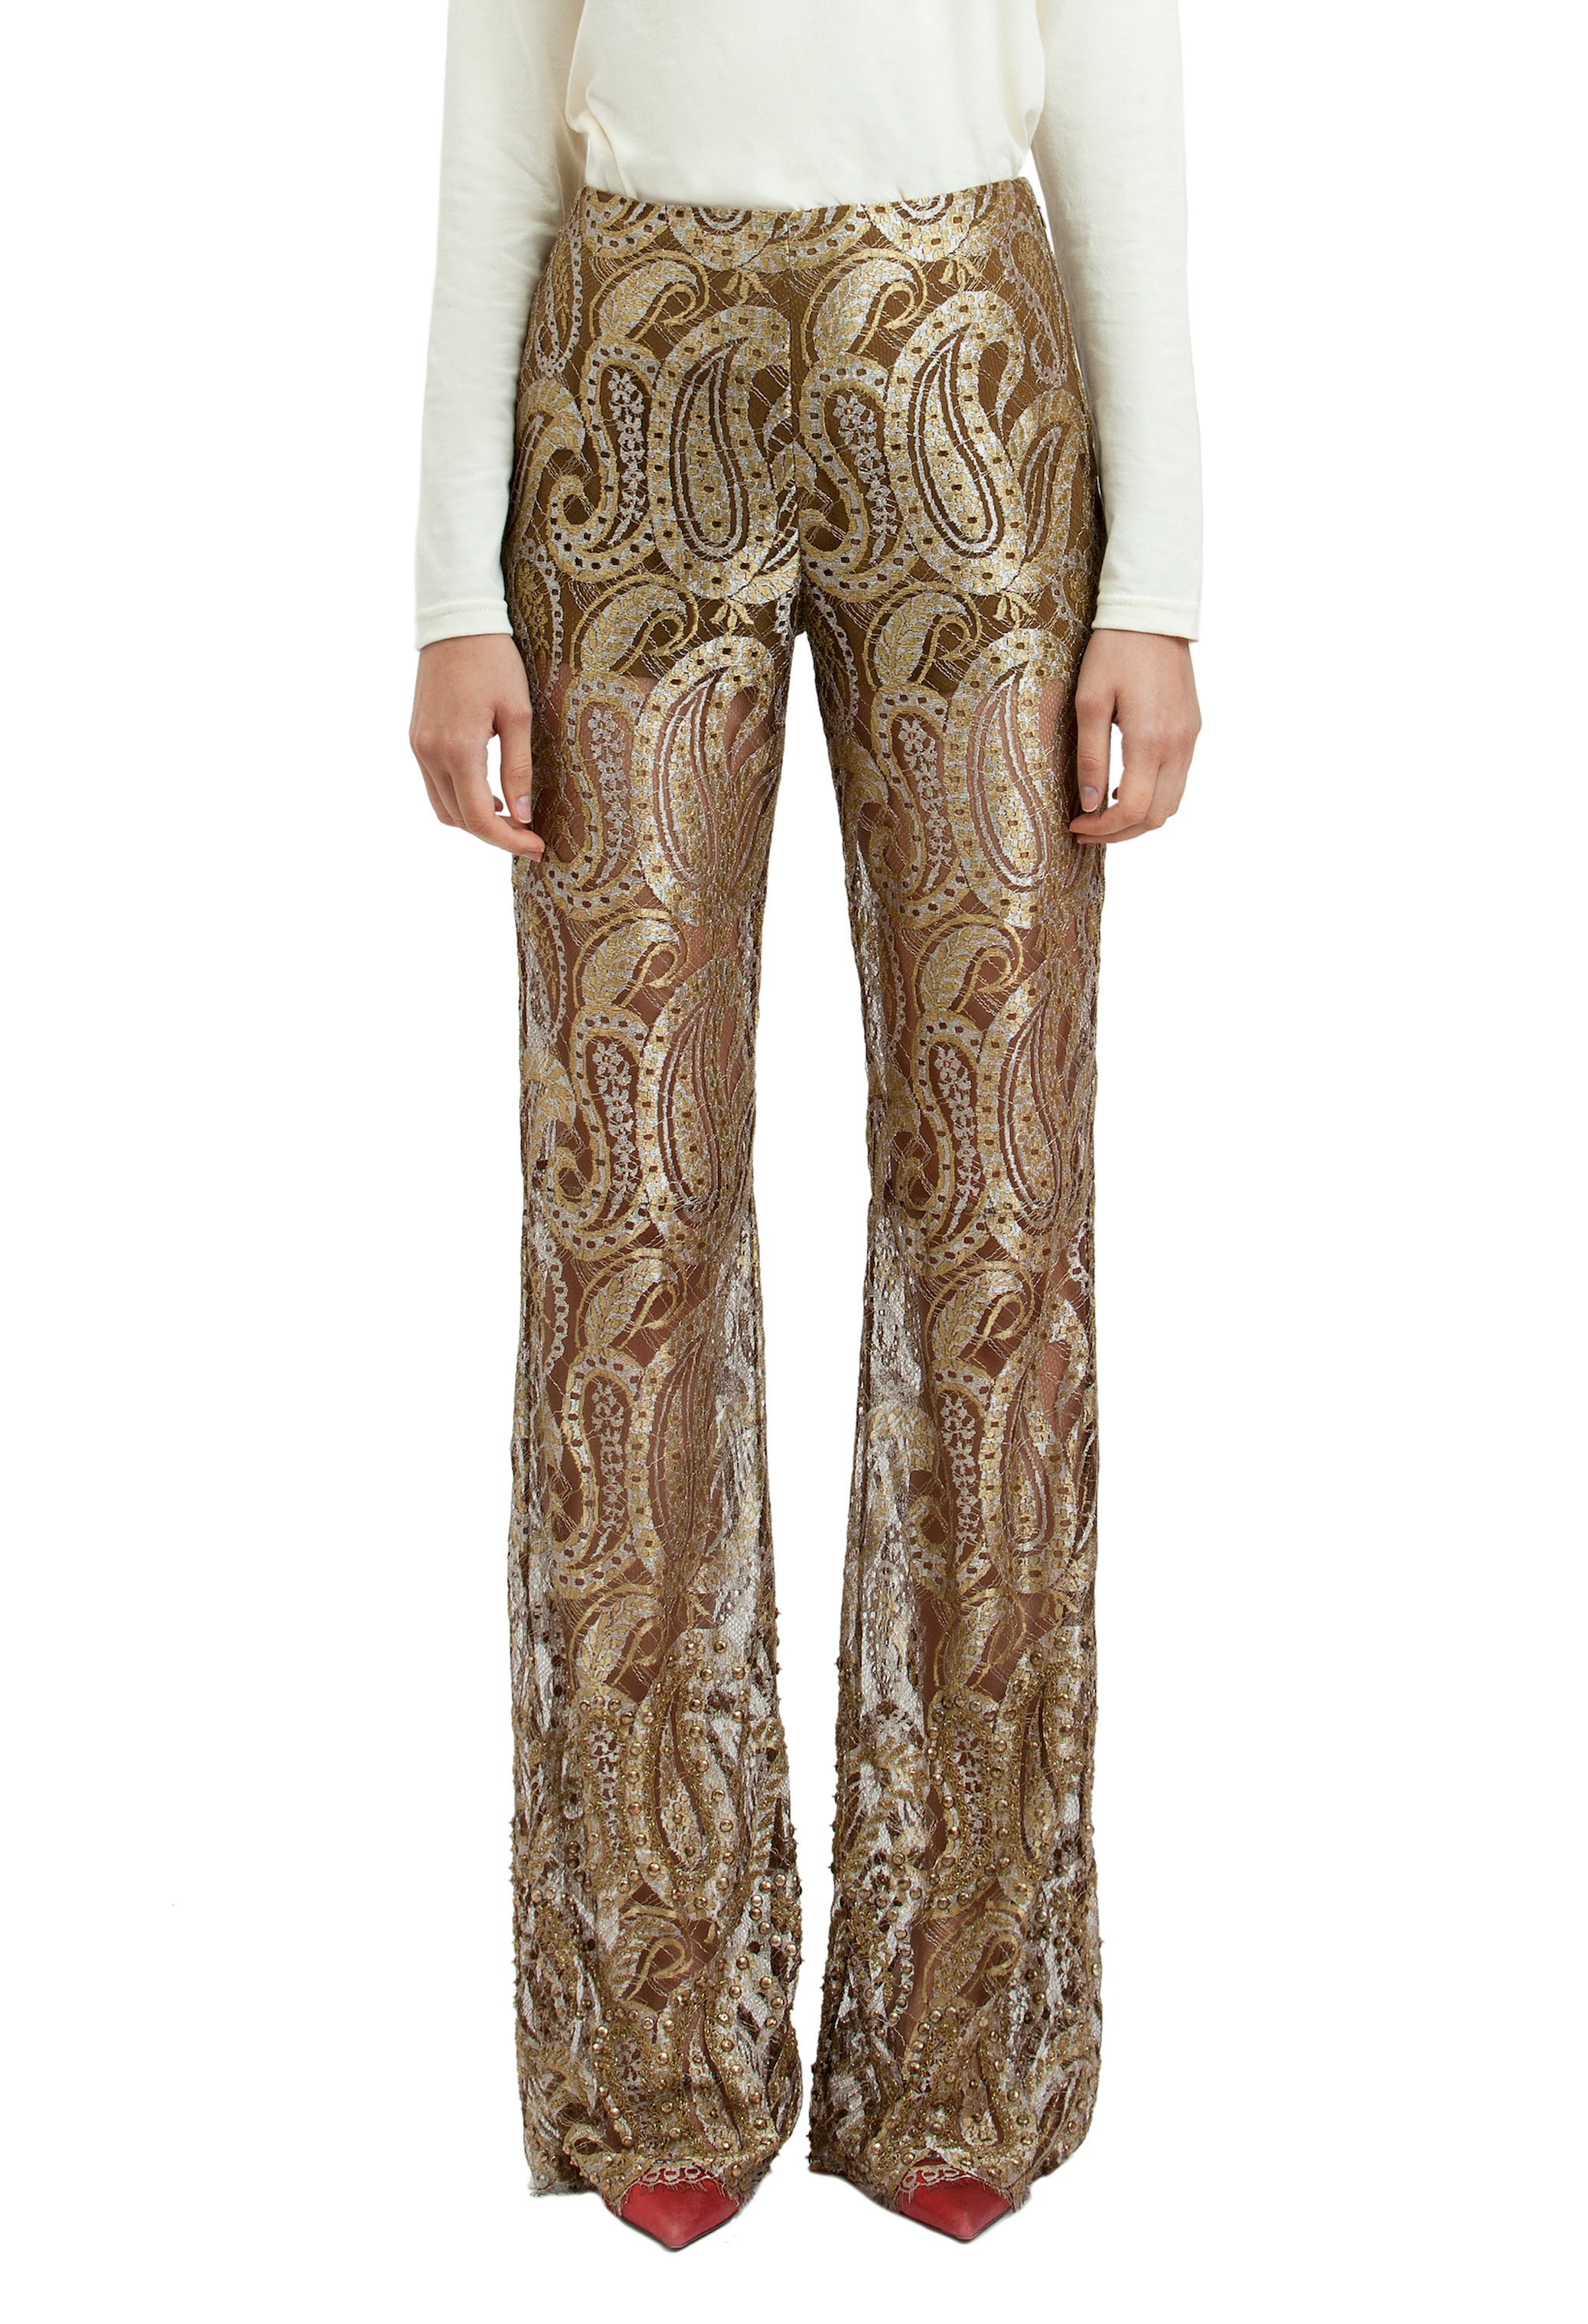 PAISLEY LACE PANTS